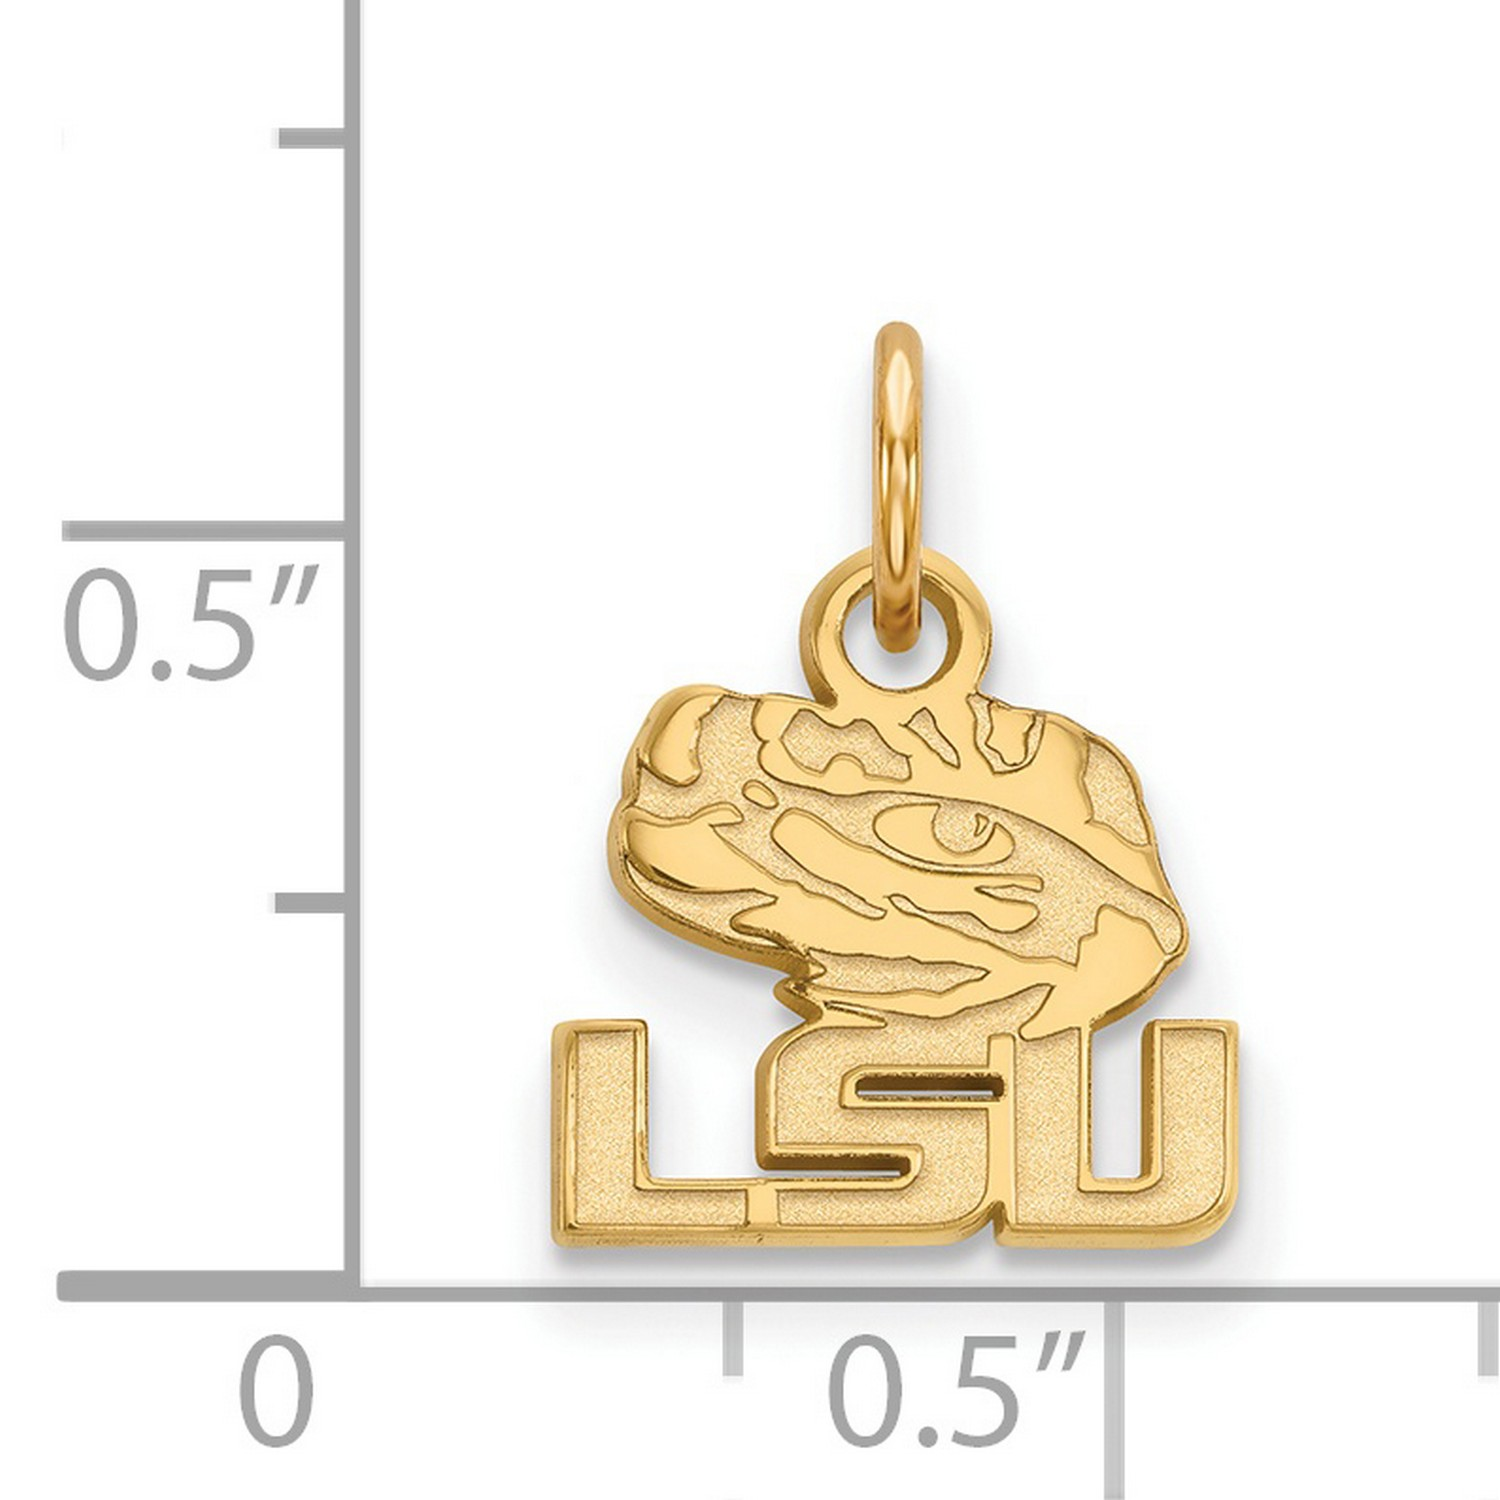 10K Yellow Gold Charm Pendant Themed 17 mm 11 Polished Border Small Cut-Out Heart